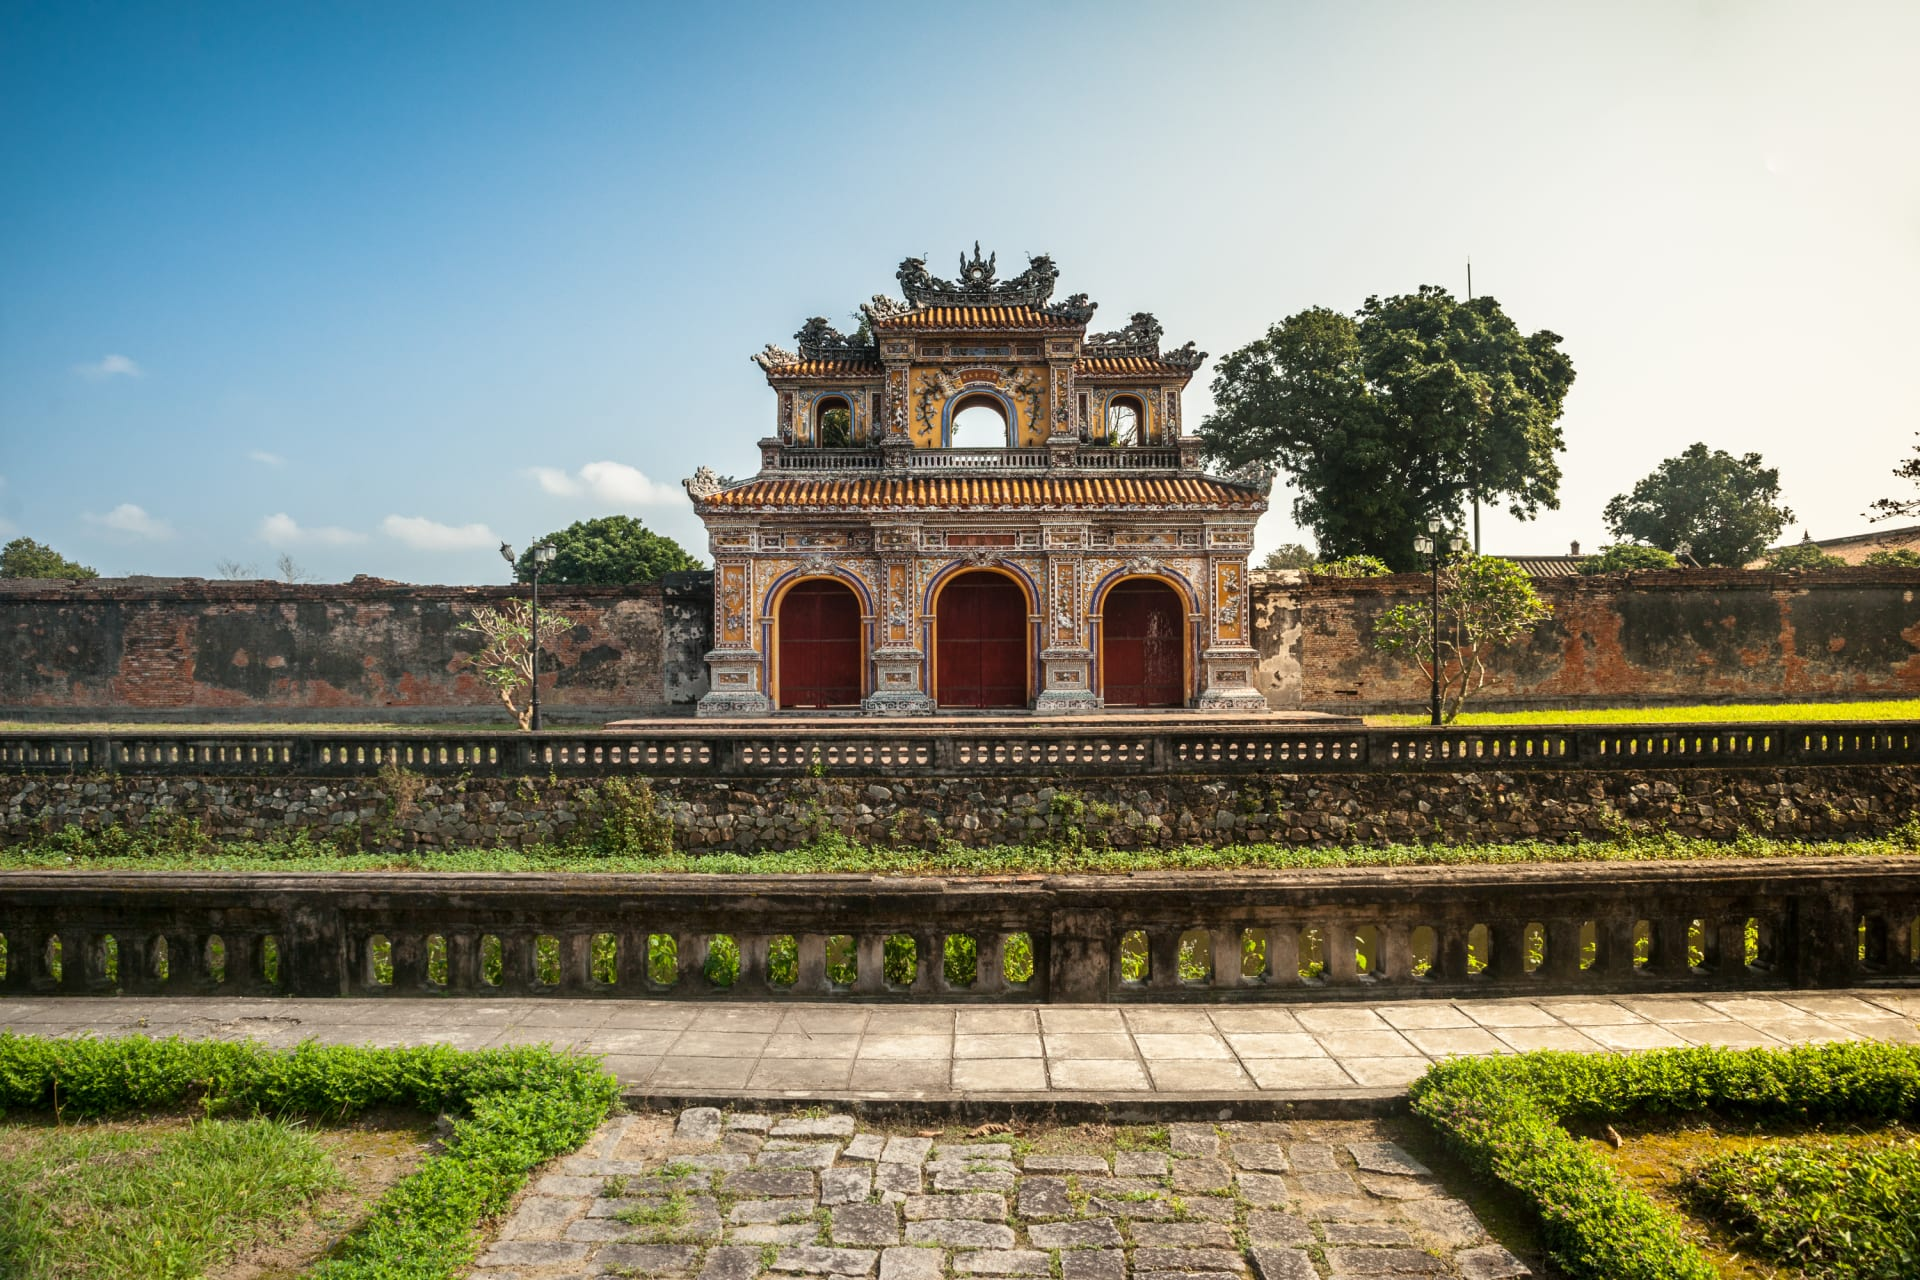 Hue - Discovering Huế - Day 6: How Big Is The Citadel?